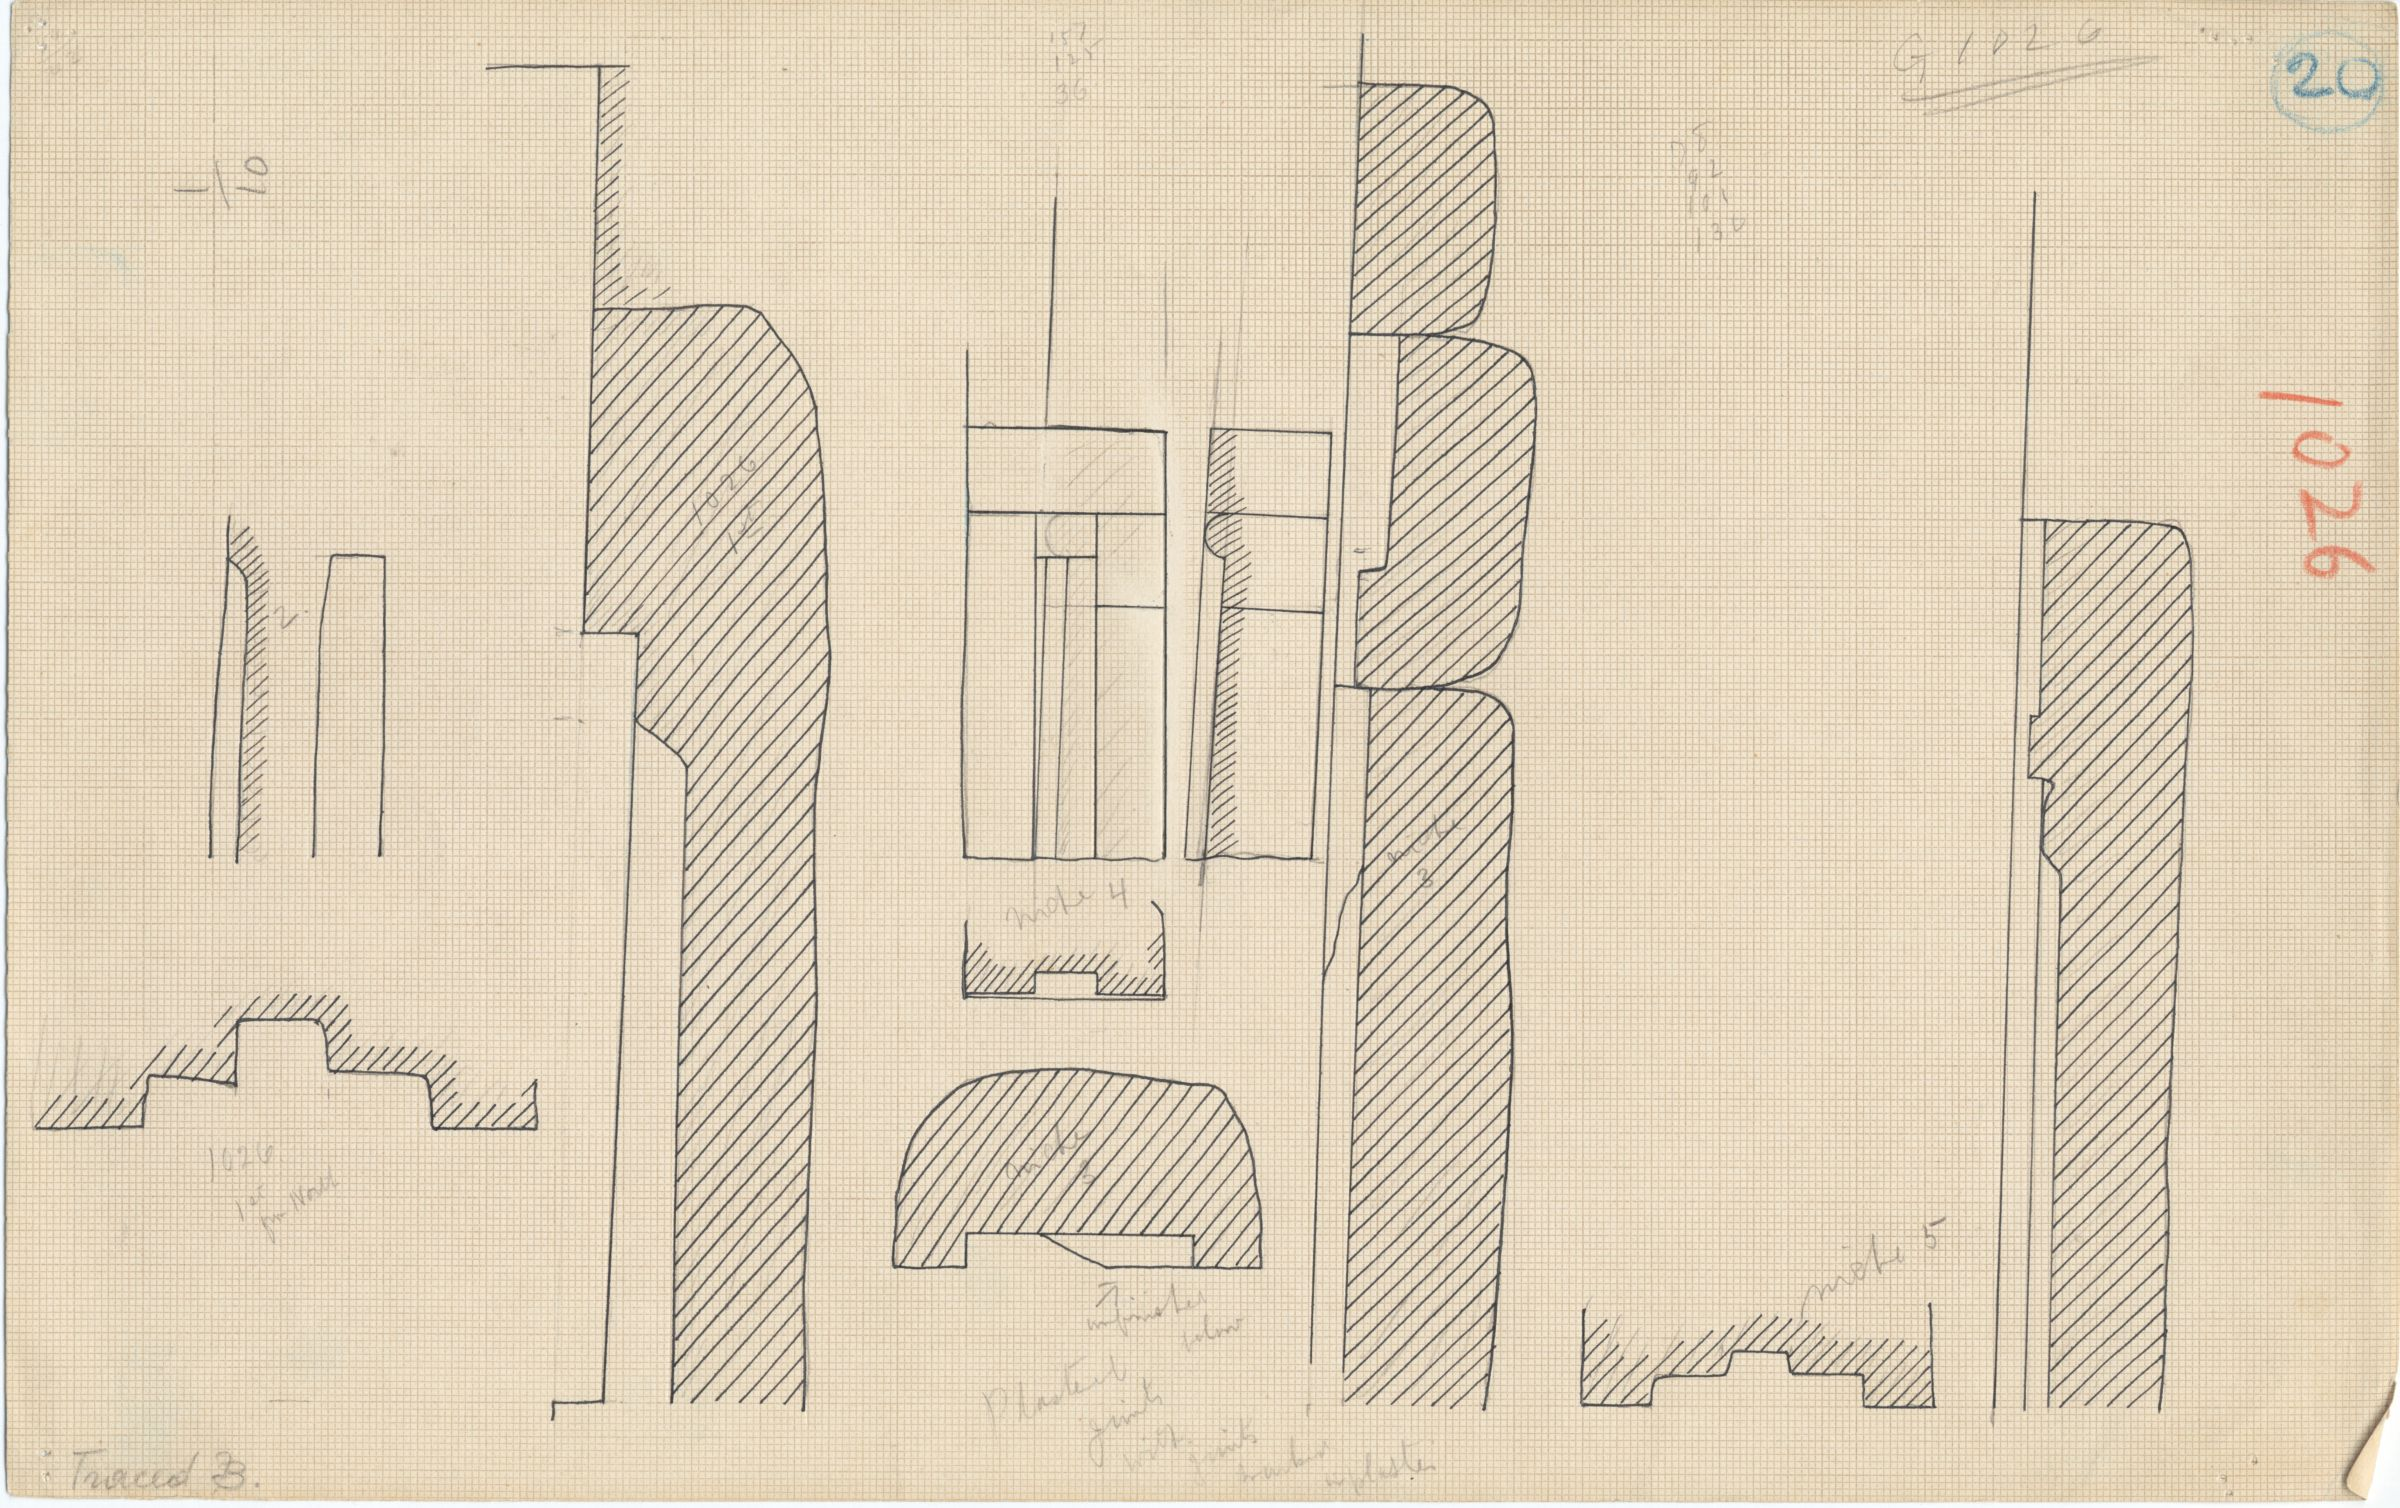 Maps and plans: G 1026, Plan and section of niches (3, 4, 5)